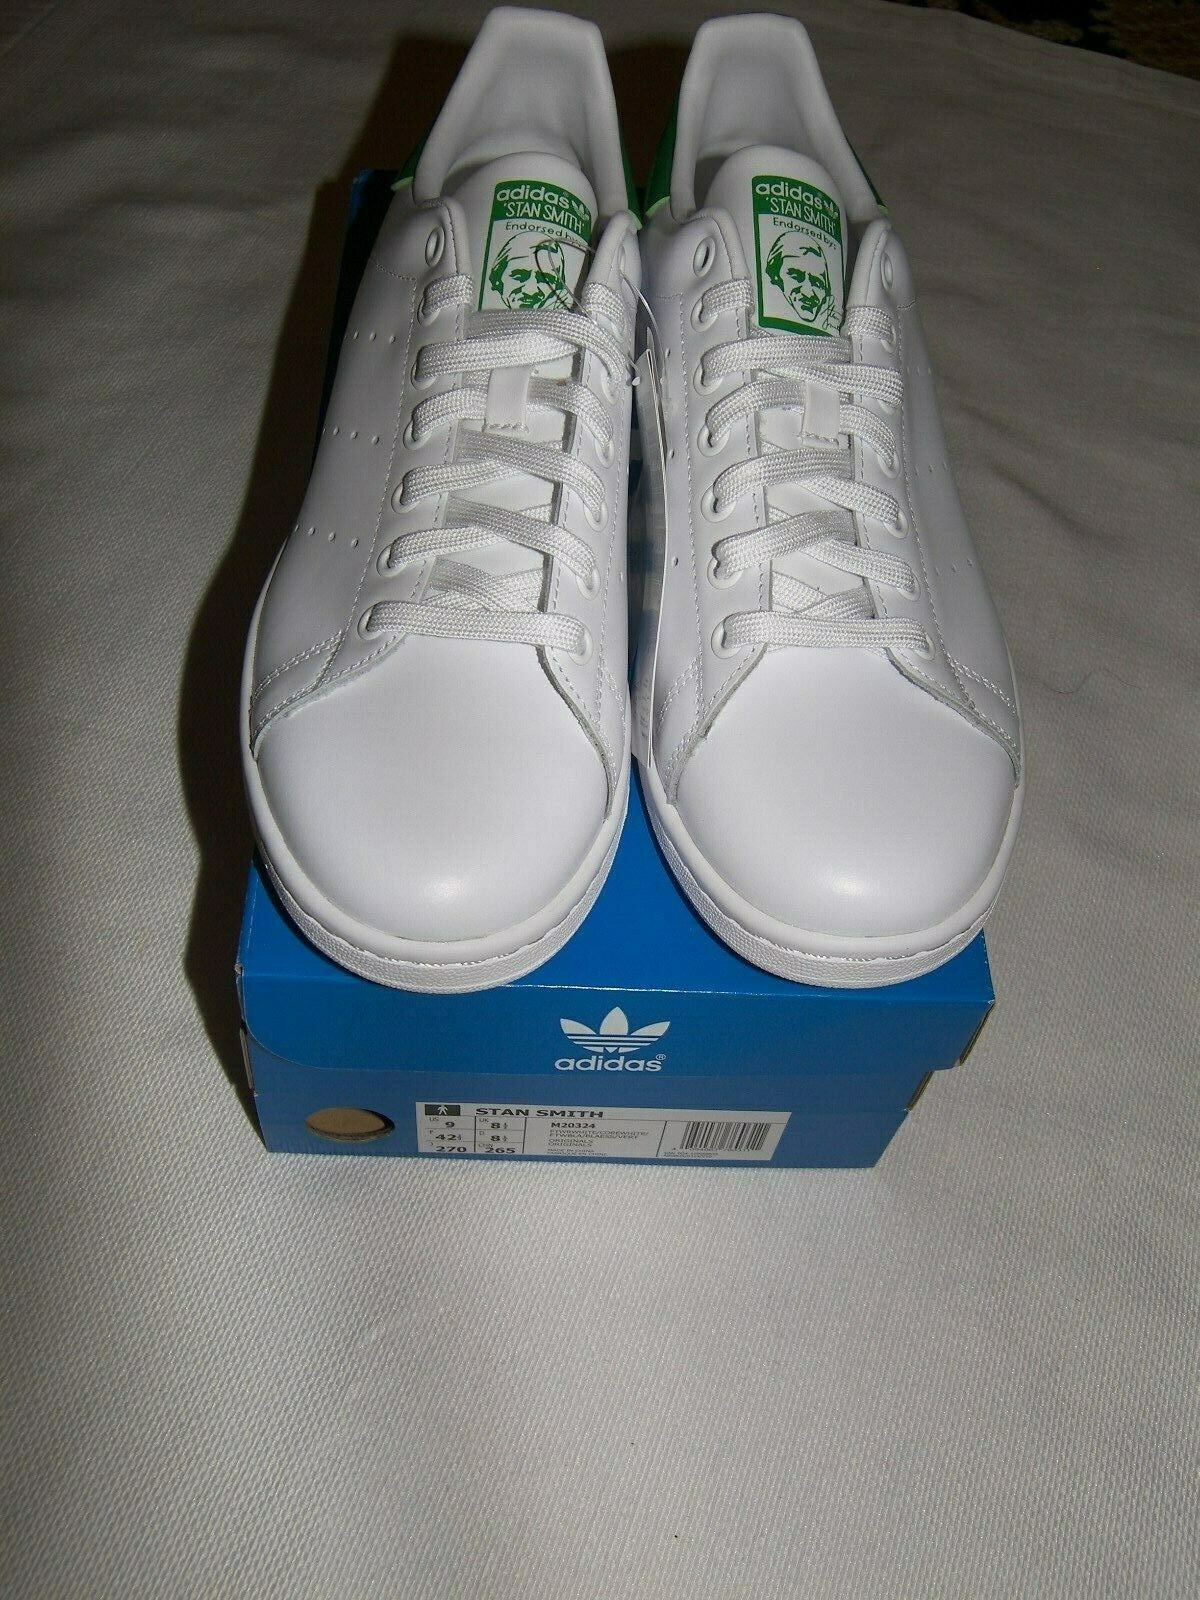 NEW MENS ADIDAS ORIGINAL STAN SMITH LEATHER SNEAKERS WHITE   GREEN SIZE 9